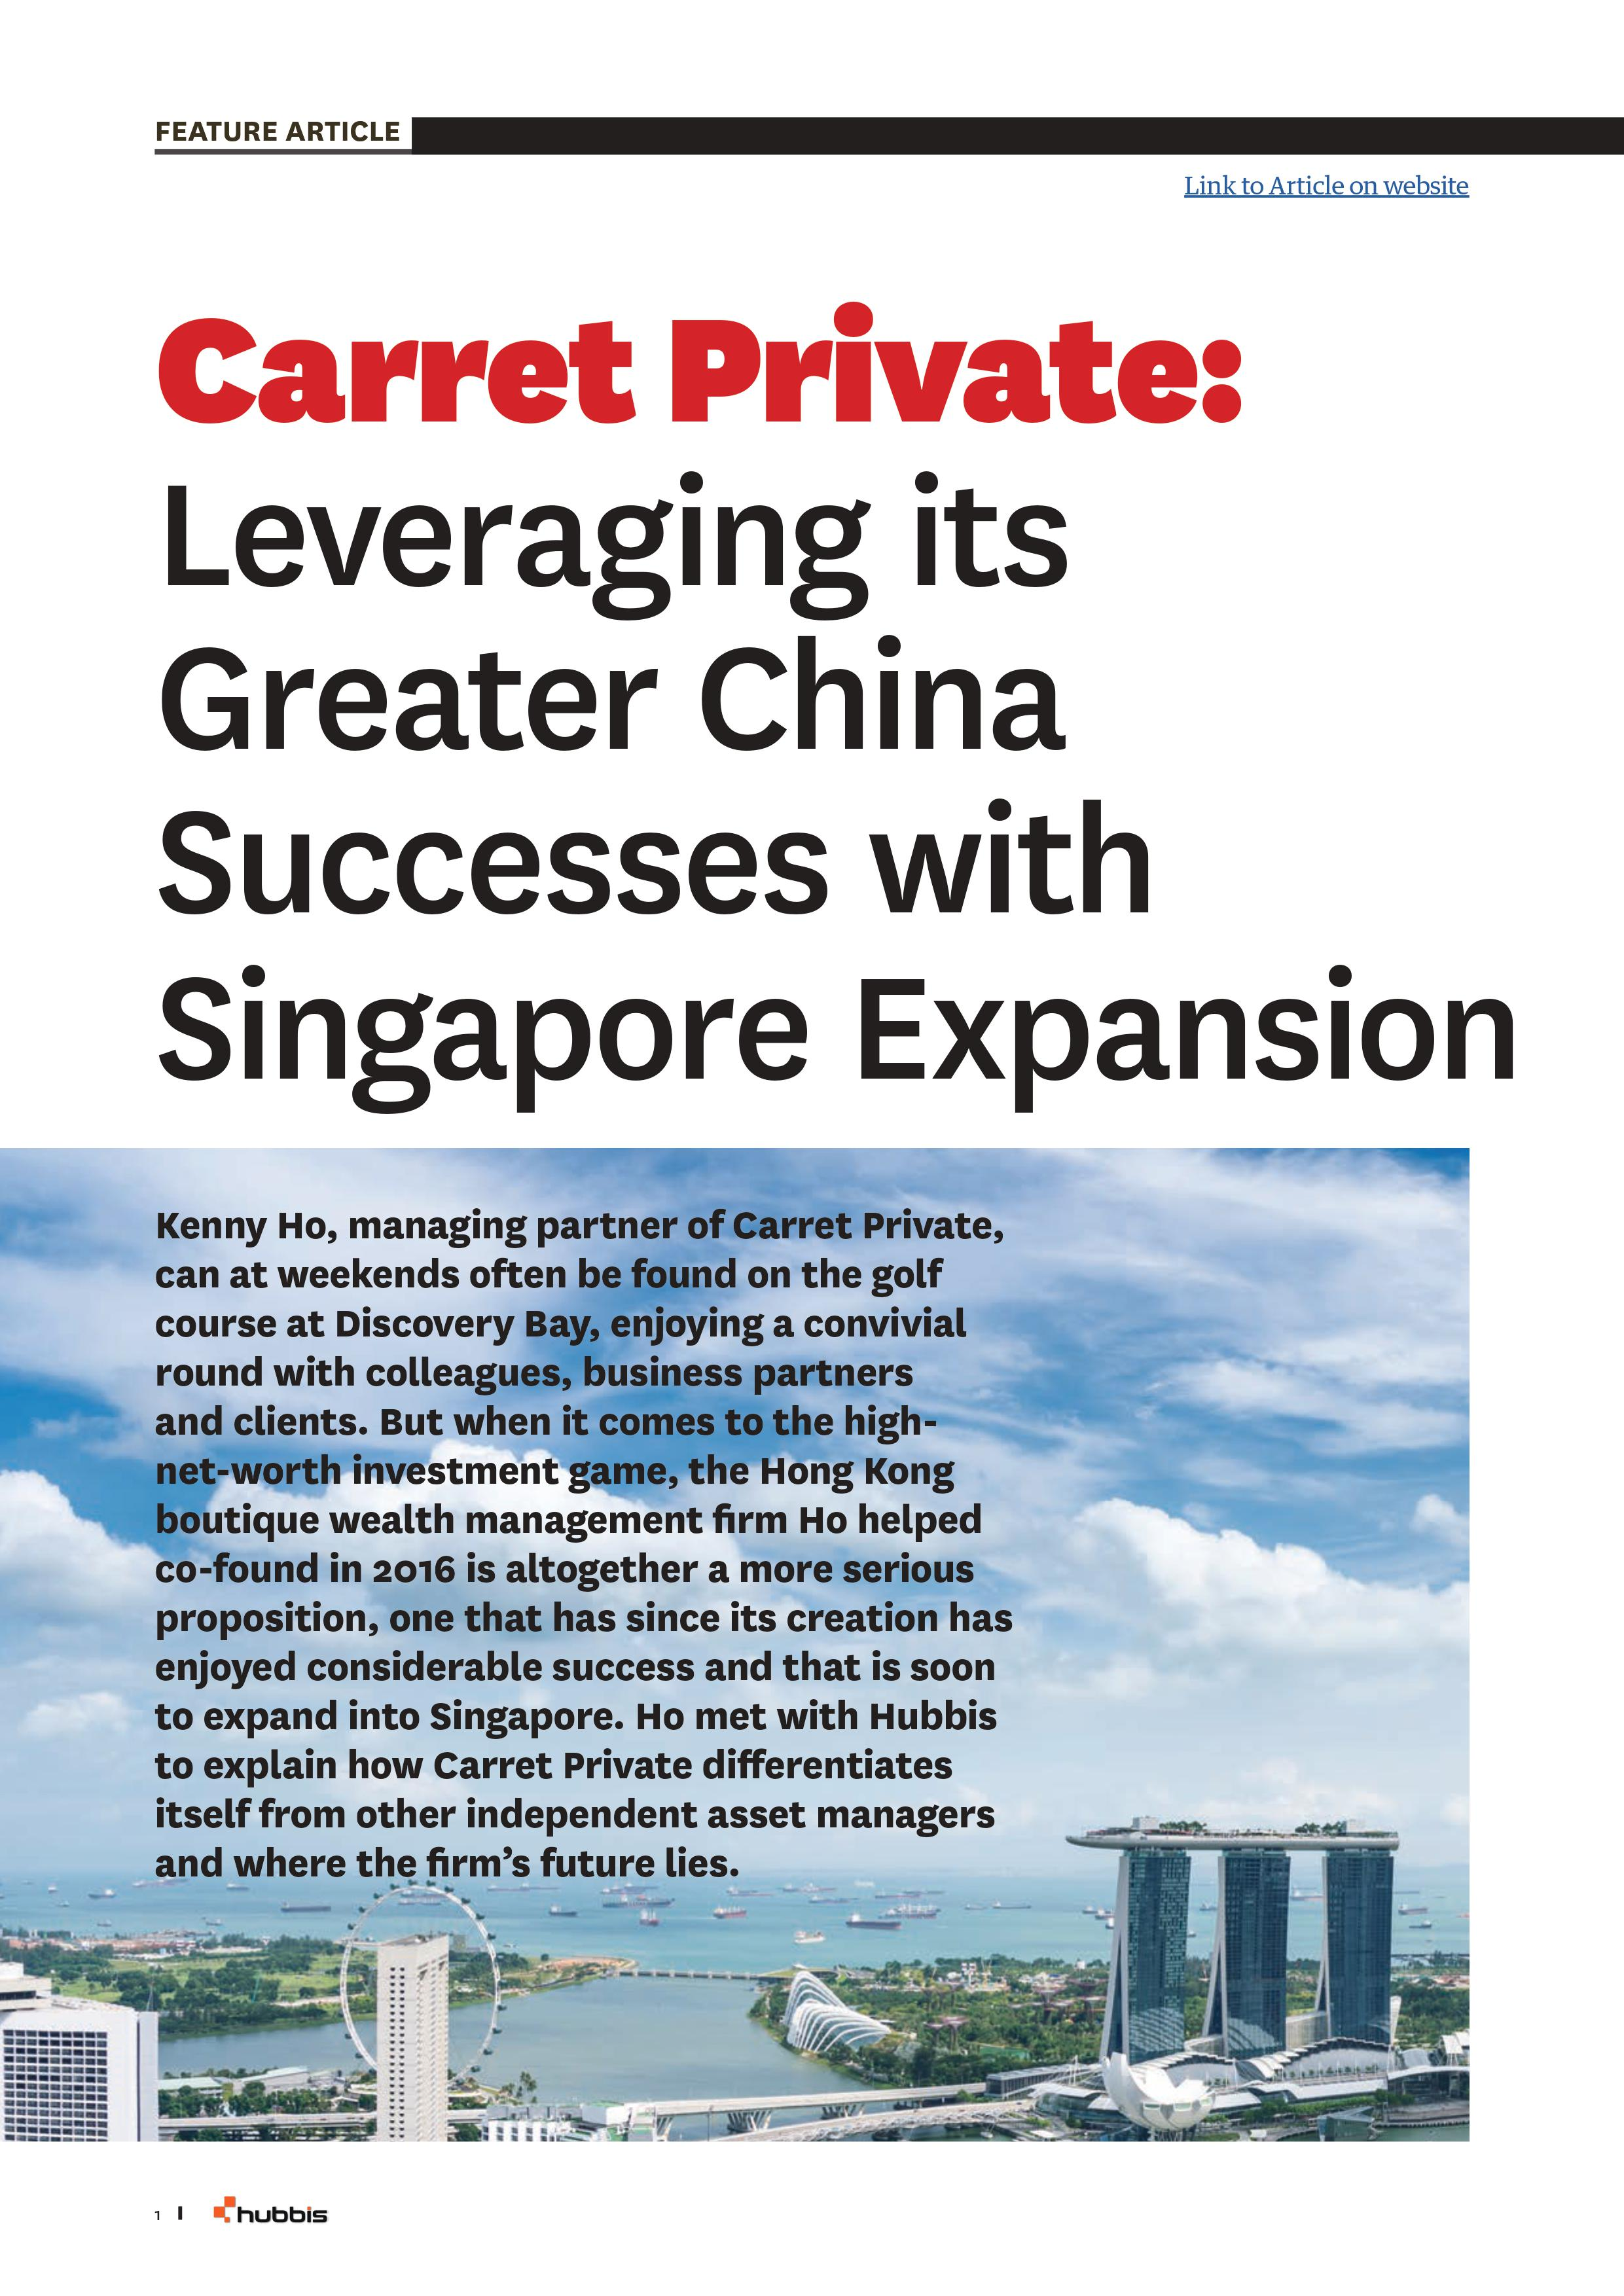 Hubbis carret-private-leveraging-its-greater-china-successes-with-singapore-expansion.01.jpg